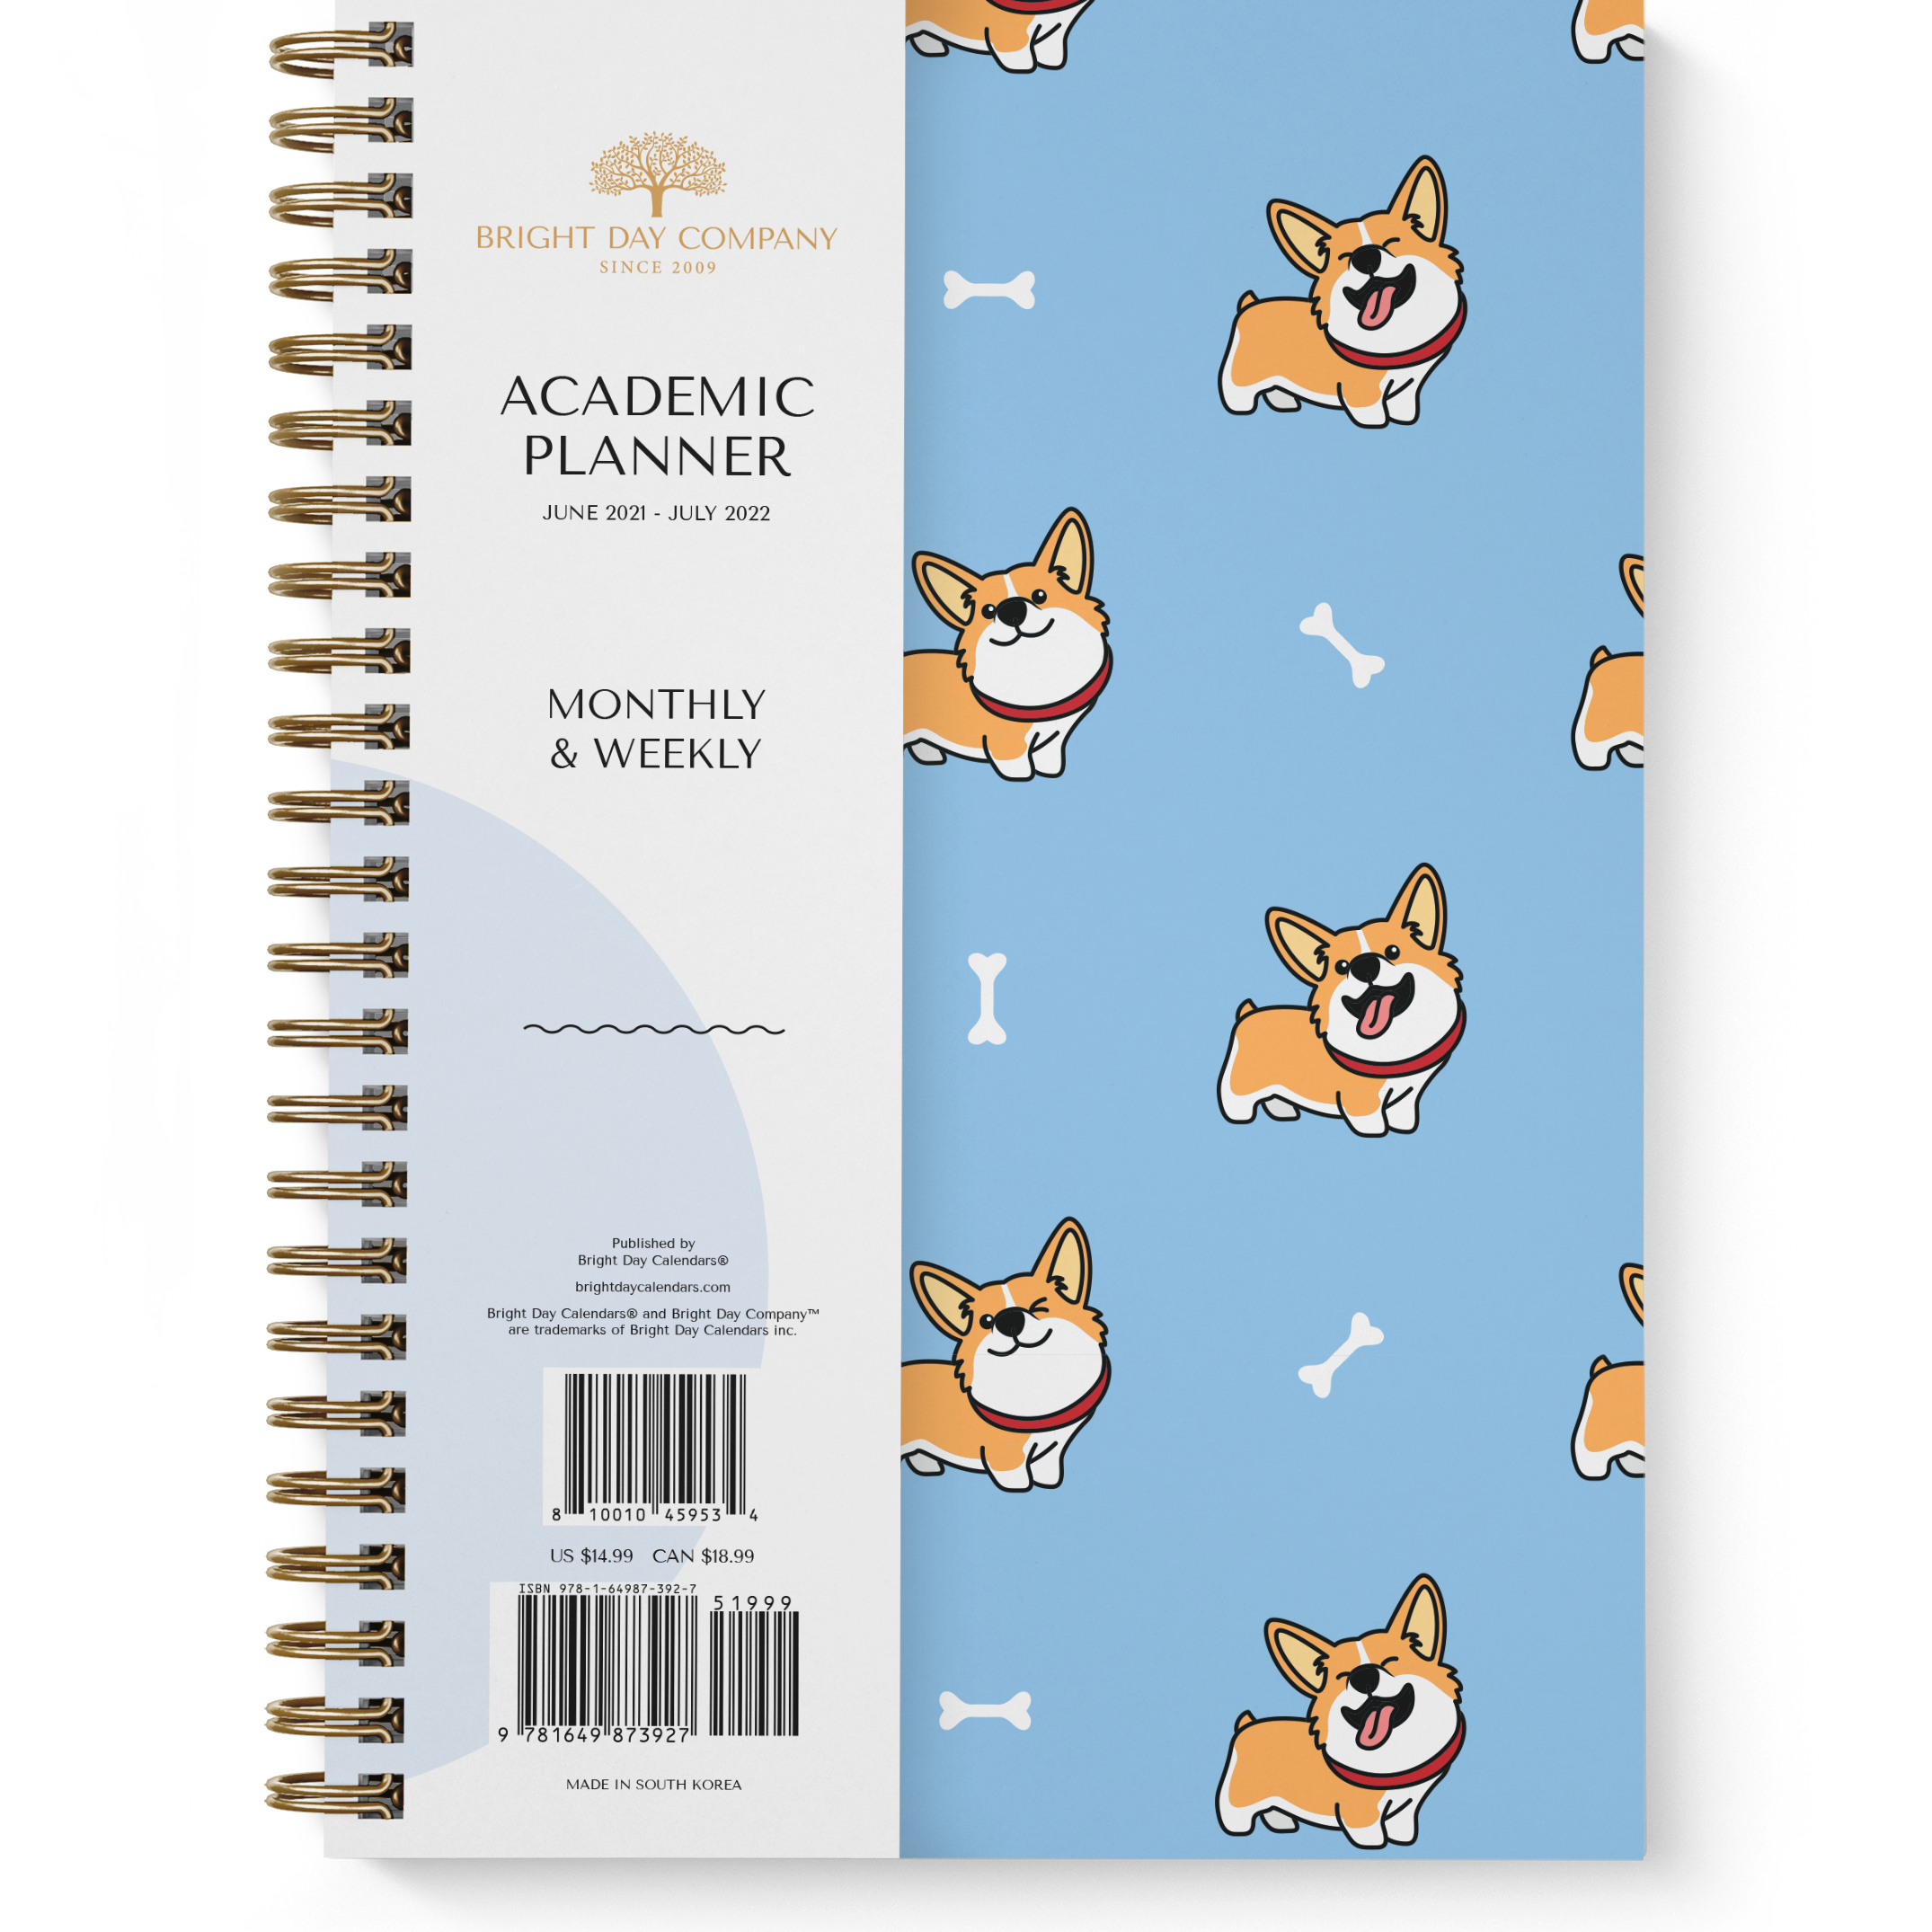 Corgi Academic Planner by Bright Day, June 2021 - July 2022, 8.25 x 6.25